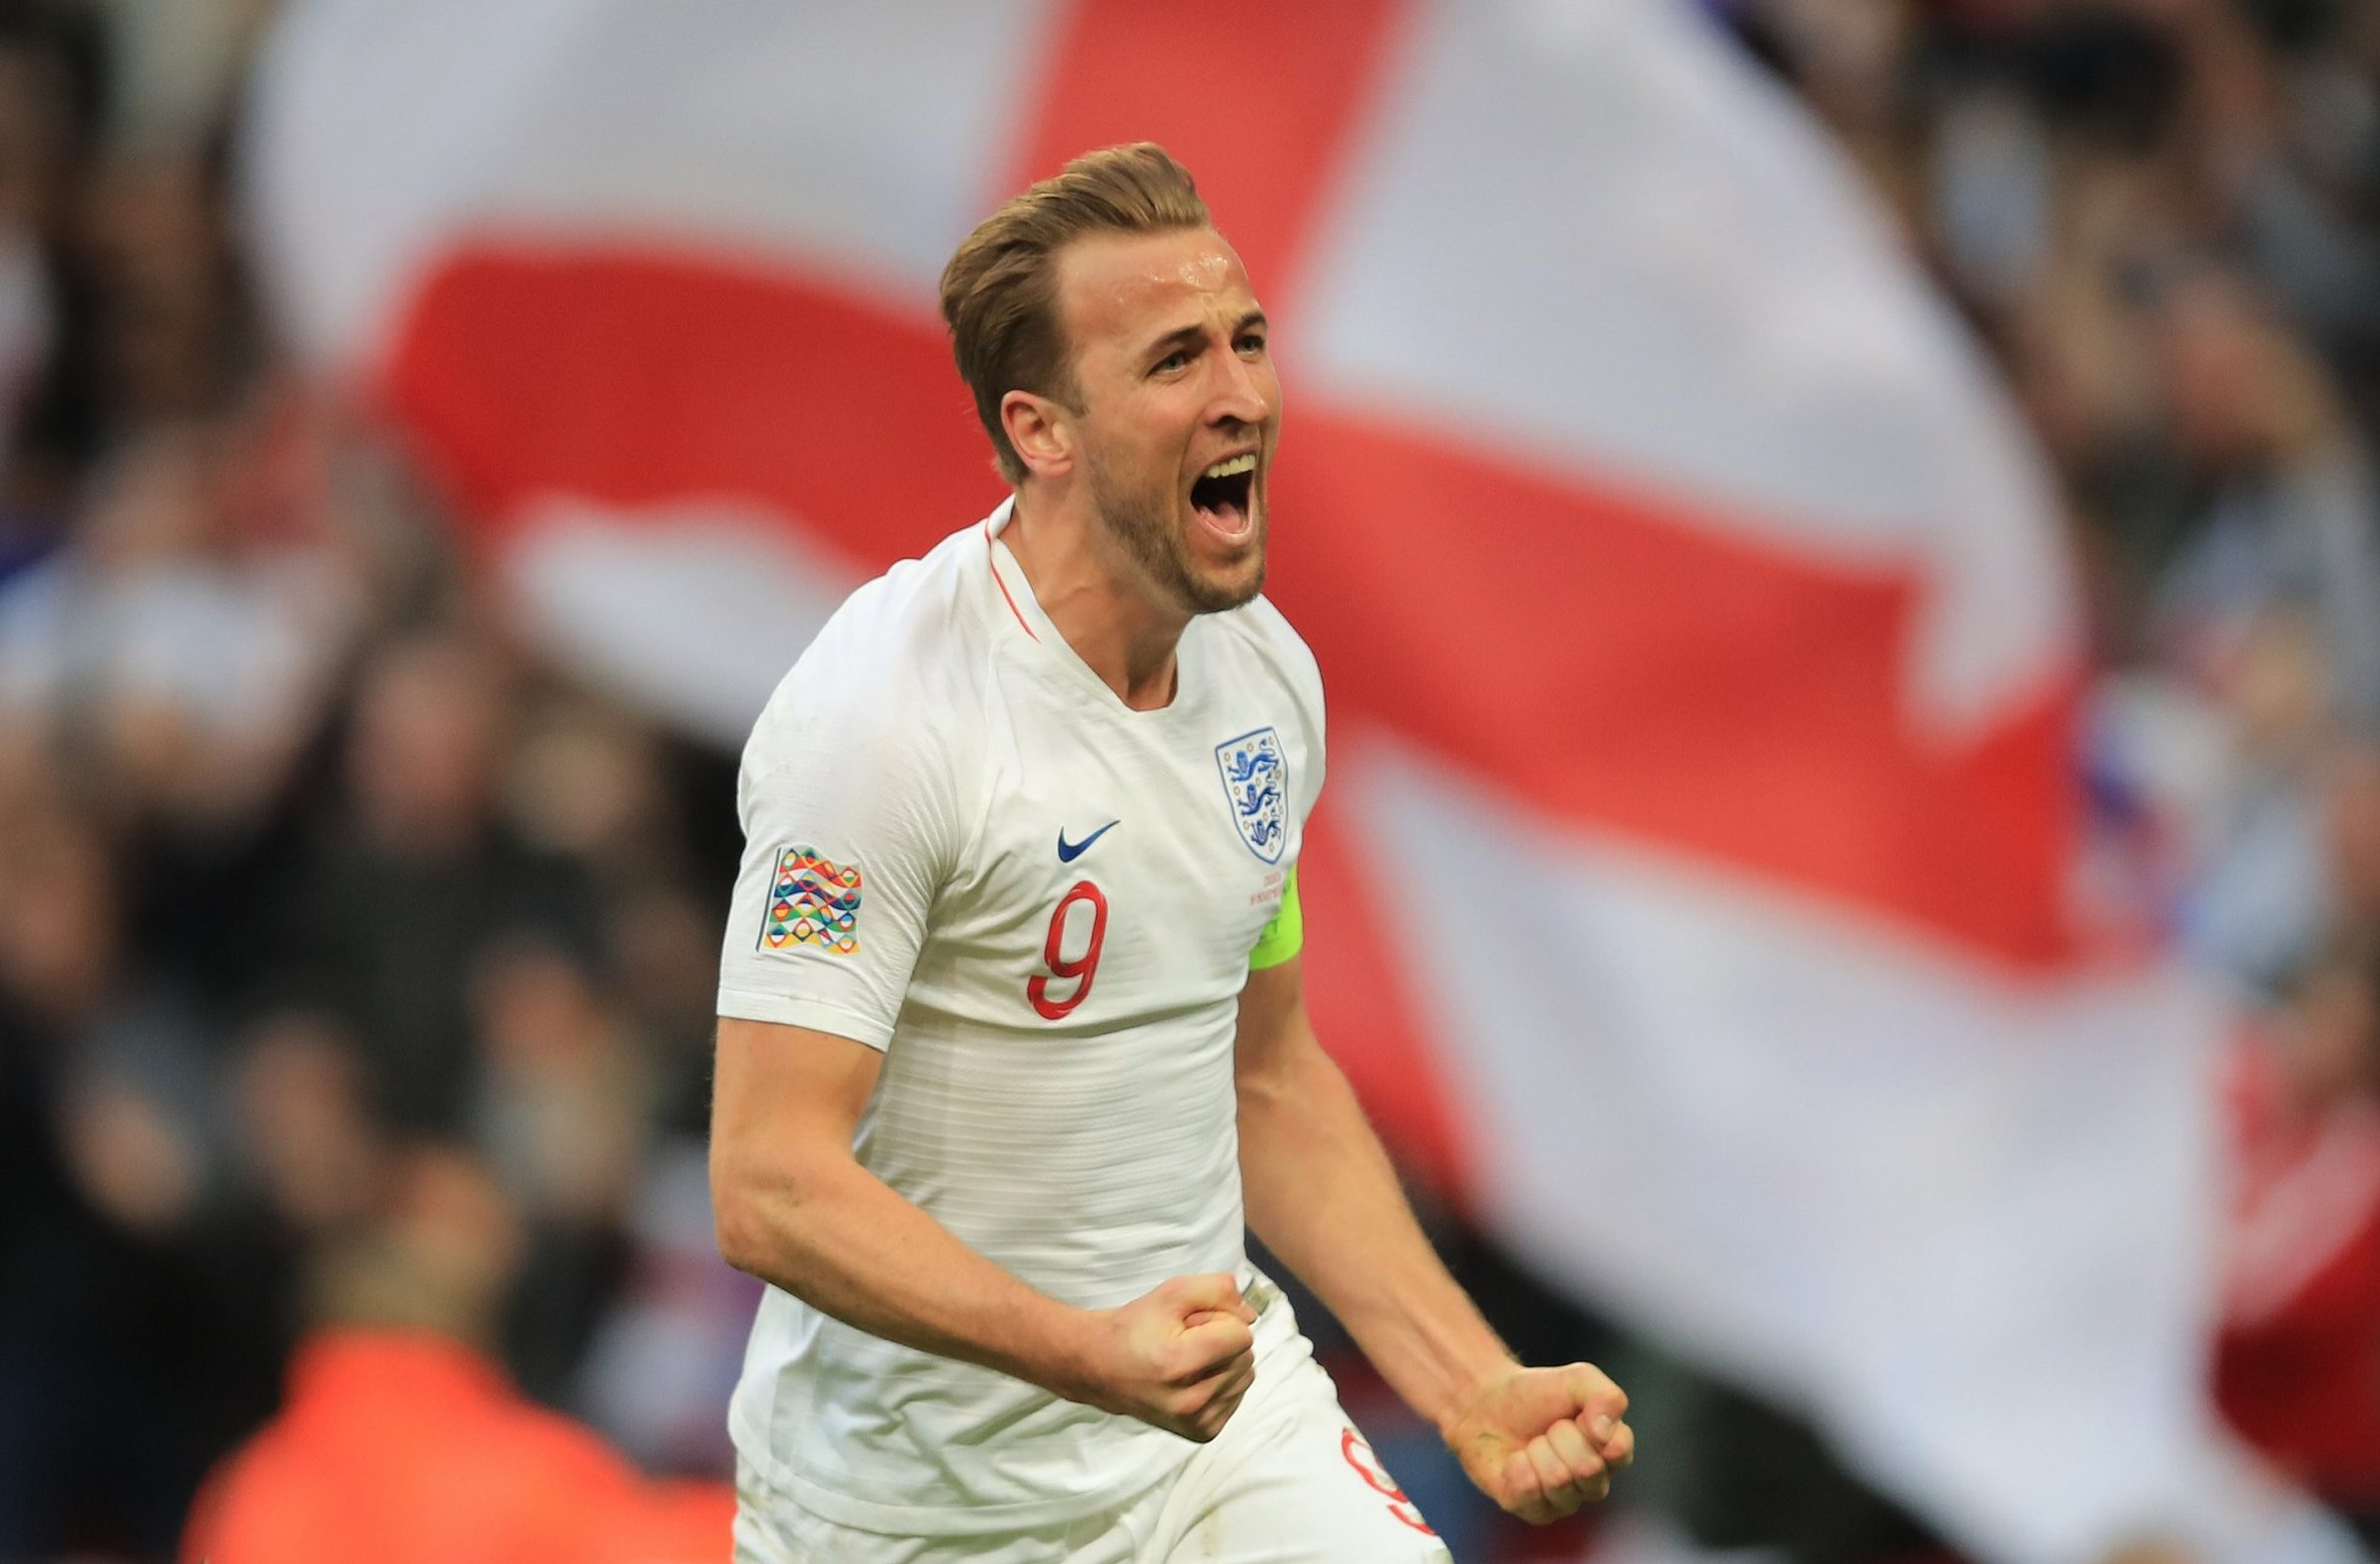 LONDON, ENGLAND - NOVEMBER 18: Harry Kane of England celebrates scoring their 2nd goal during the UEFA Nations League A group four match between England and Croatia at Wembley Stadium on November 18, 2018 in London, United Kingdom. (Photo by Marc Atkins/Getty Images)